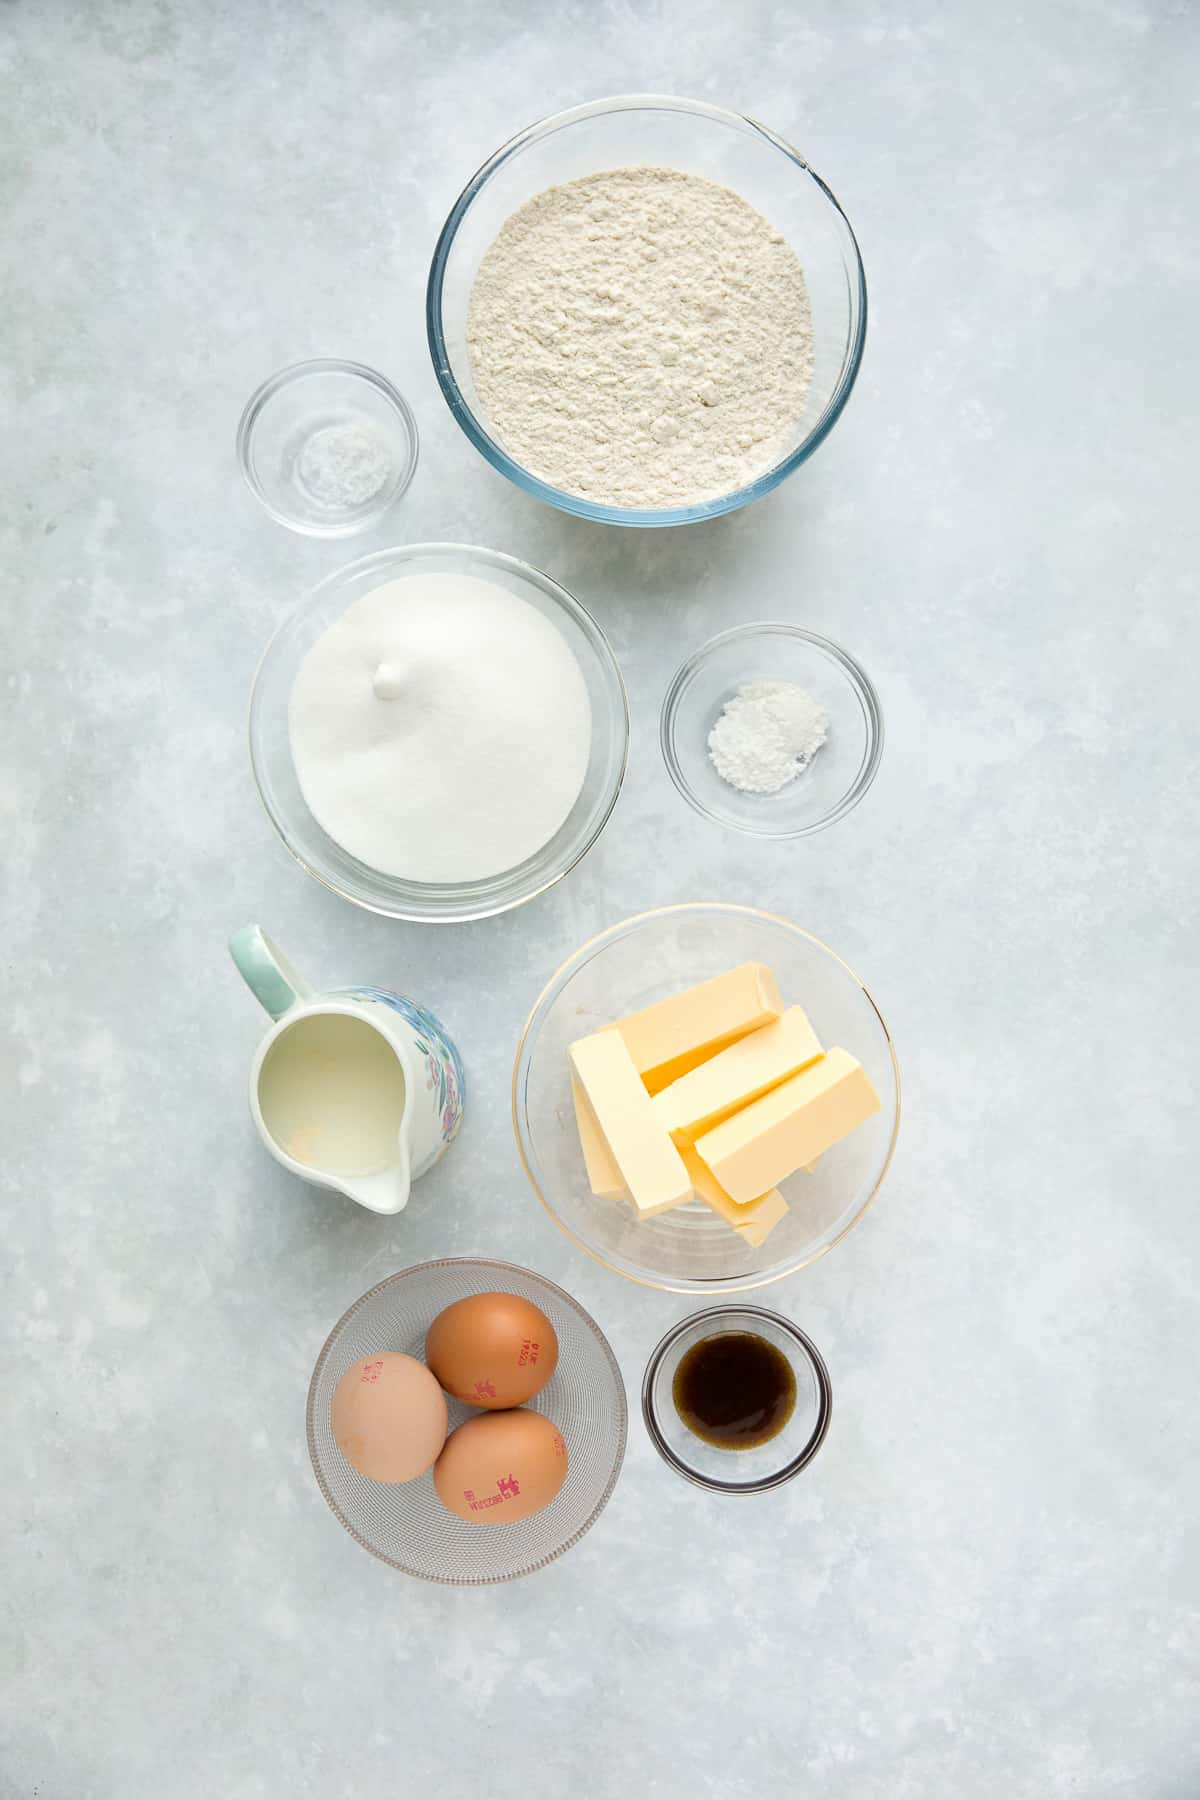 The ingredients needed for a Vanilla Loaf Cake set out in bowls.